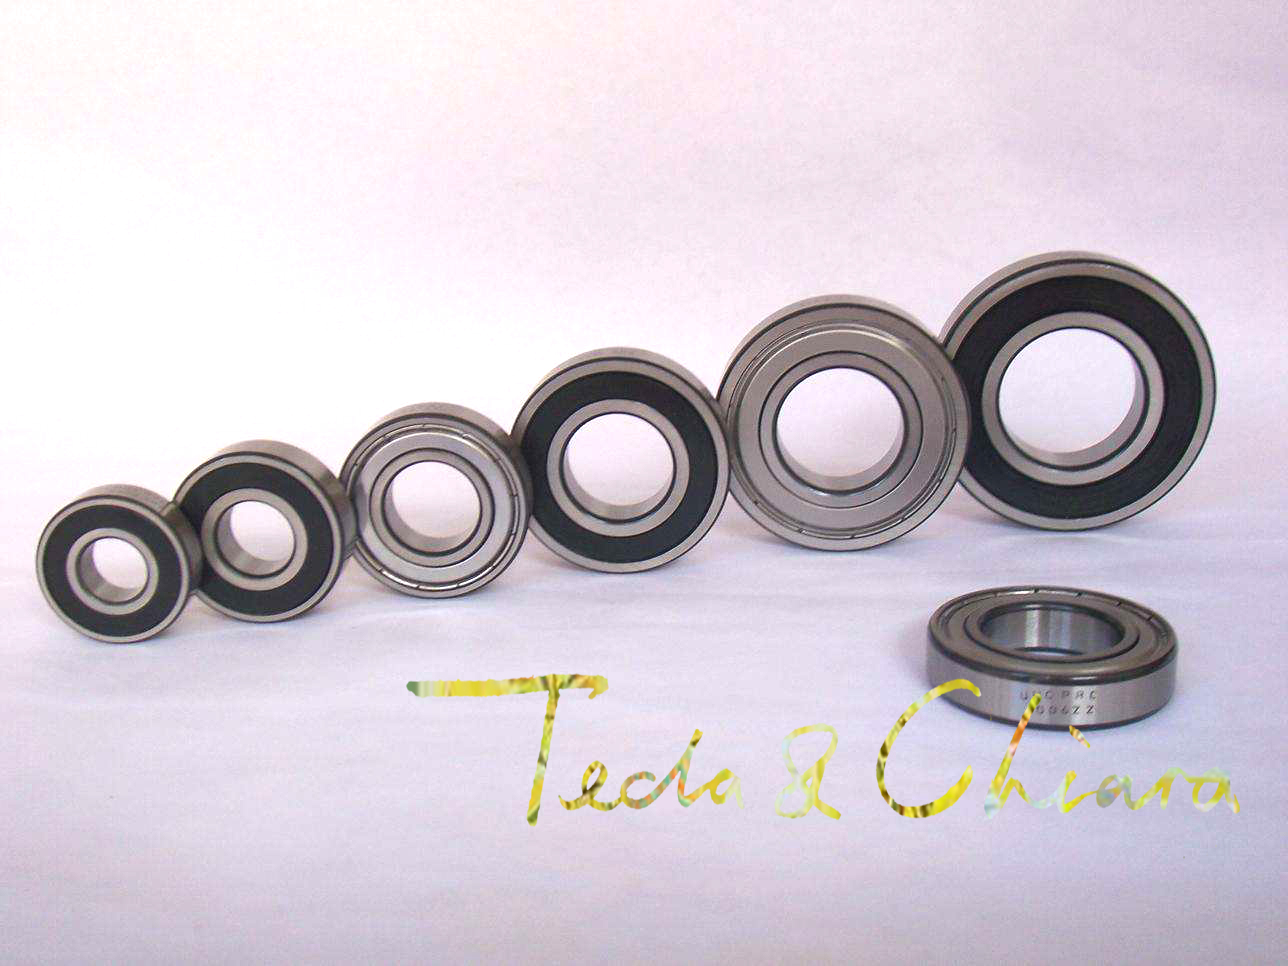 628 628ZZ 628RS 628-2Z 628Z 628-2RS ZZ RS RZ 2RZ Deep Groove Ball Bearings 8 X 24 X 8mm